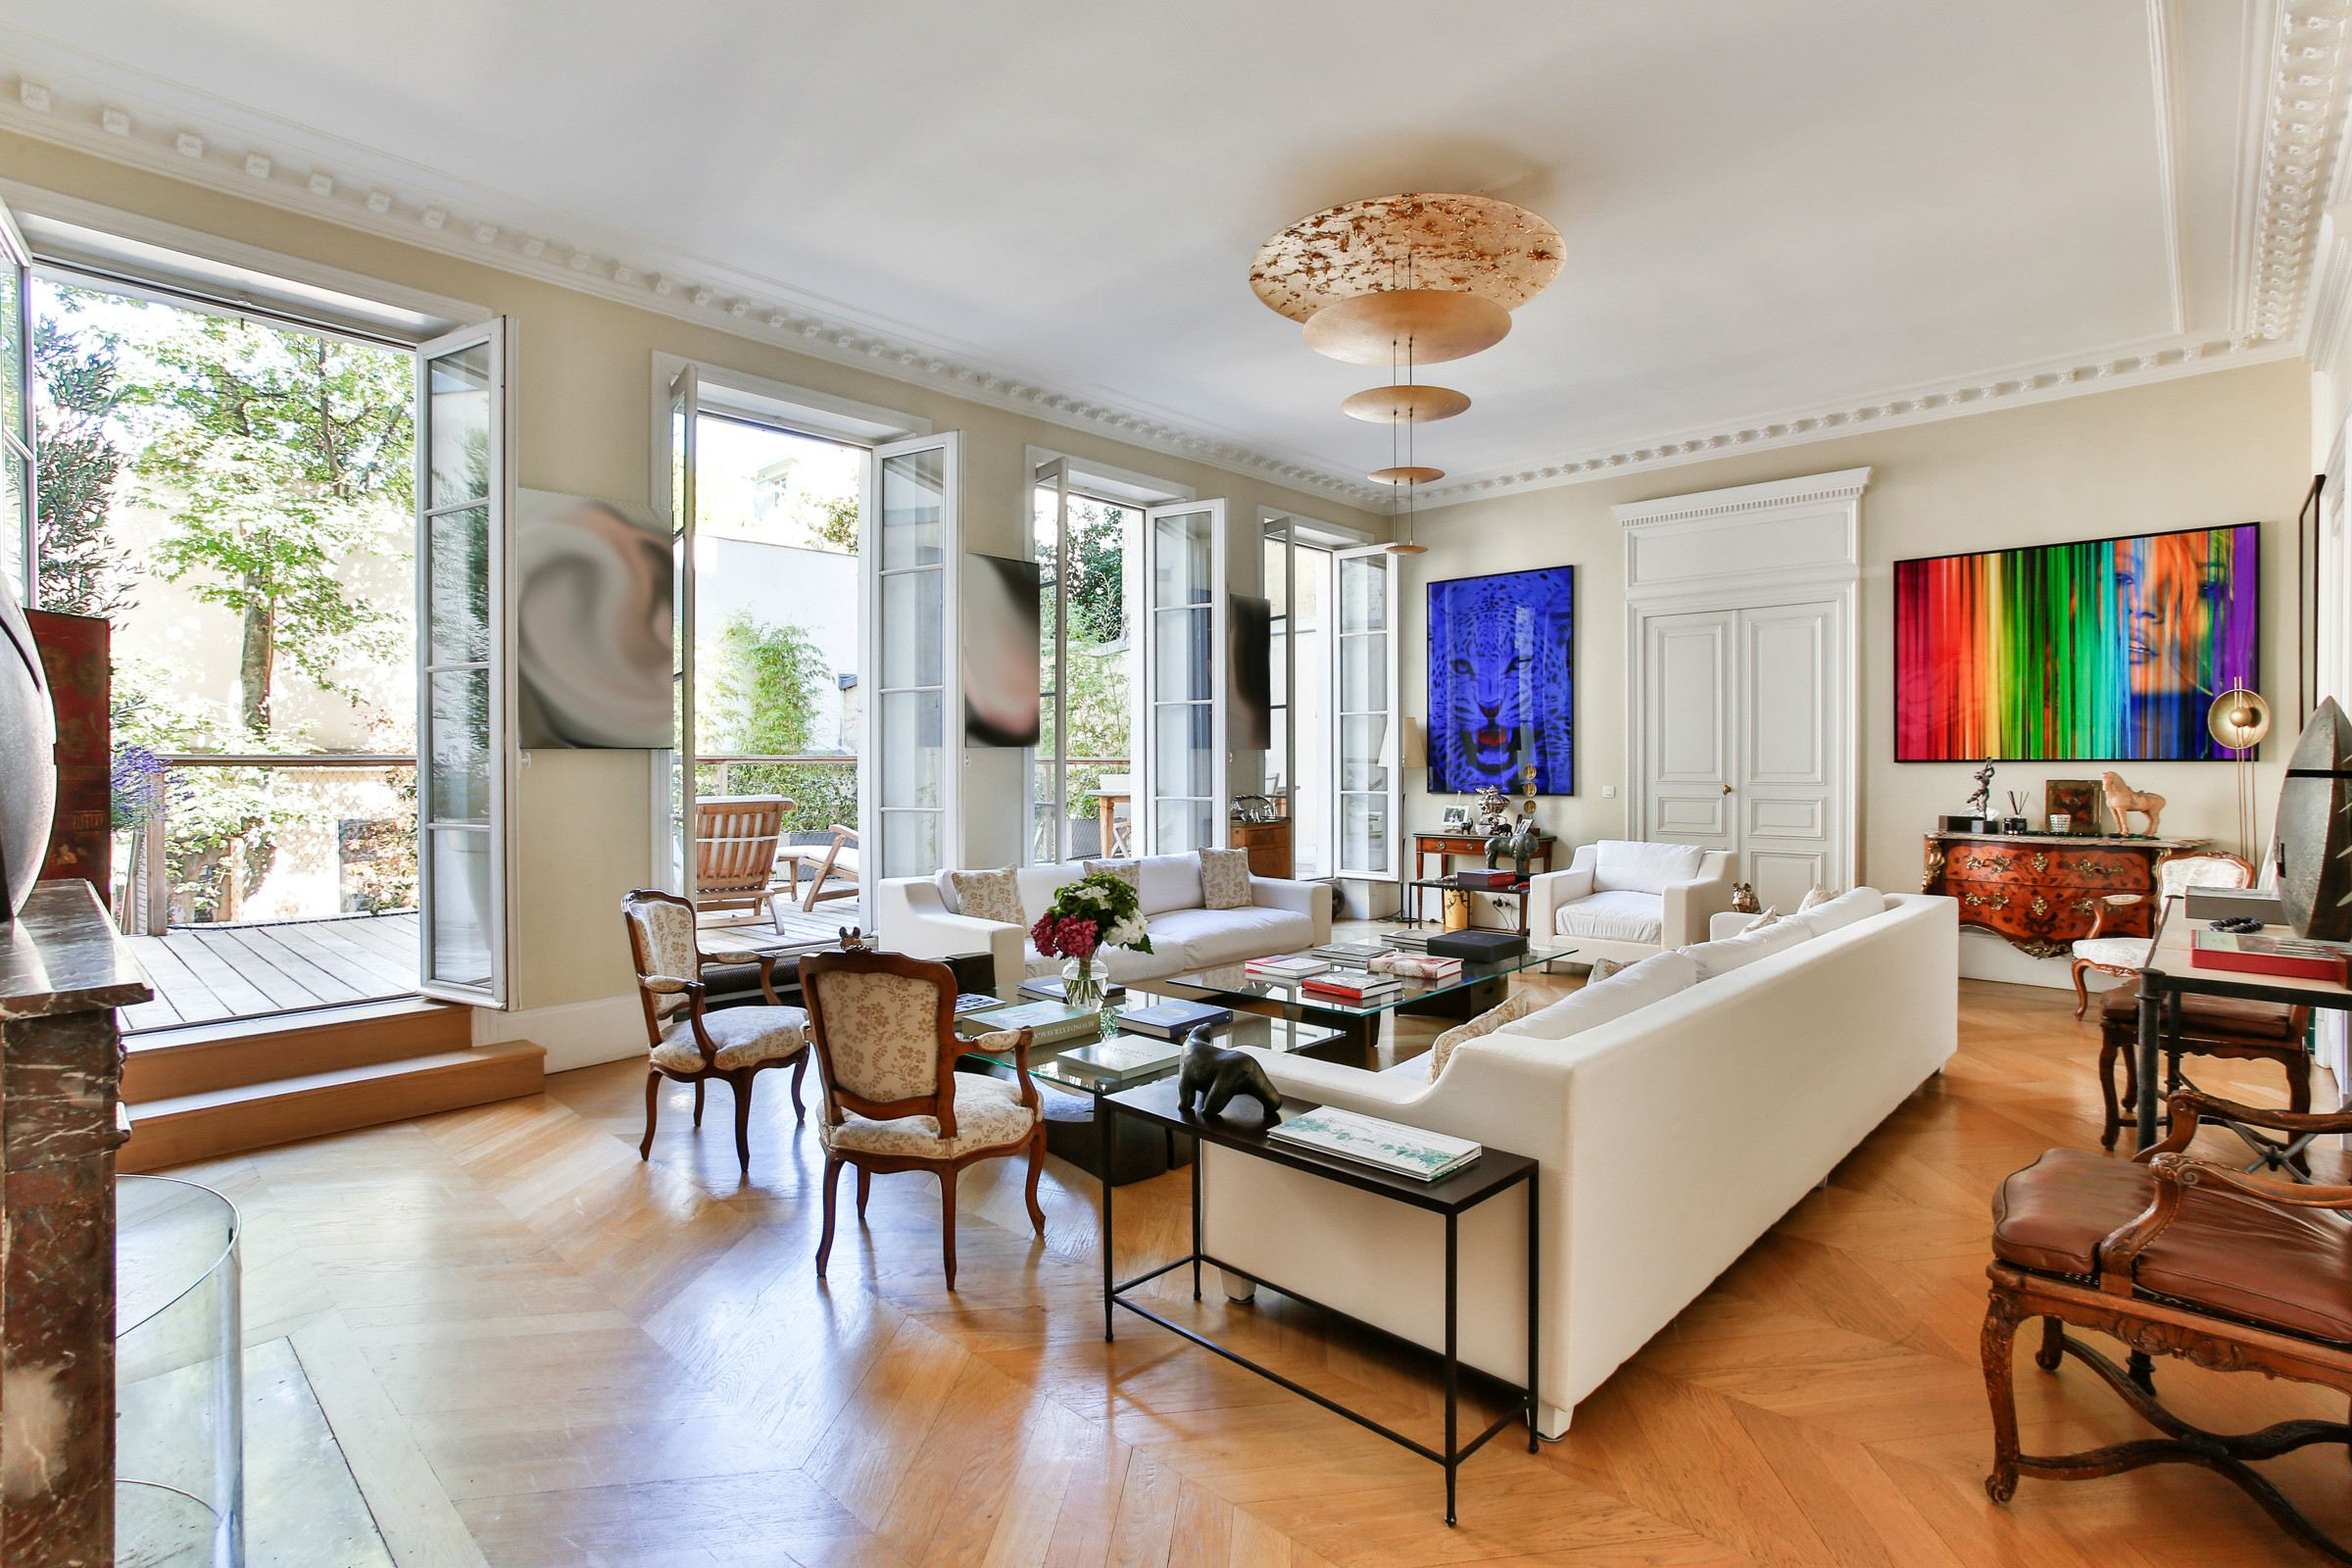 sales property at Paris 8 - Fbg-Saint-Honoré. Private mansion 420 sq.m.. Exceptional amenities